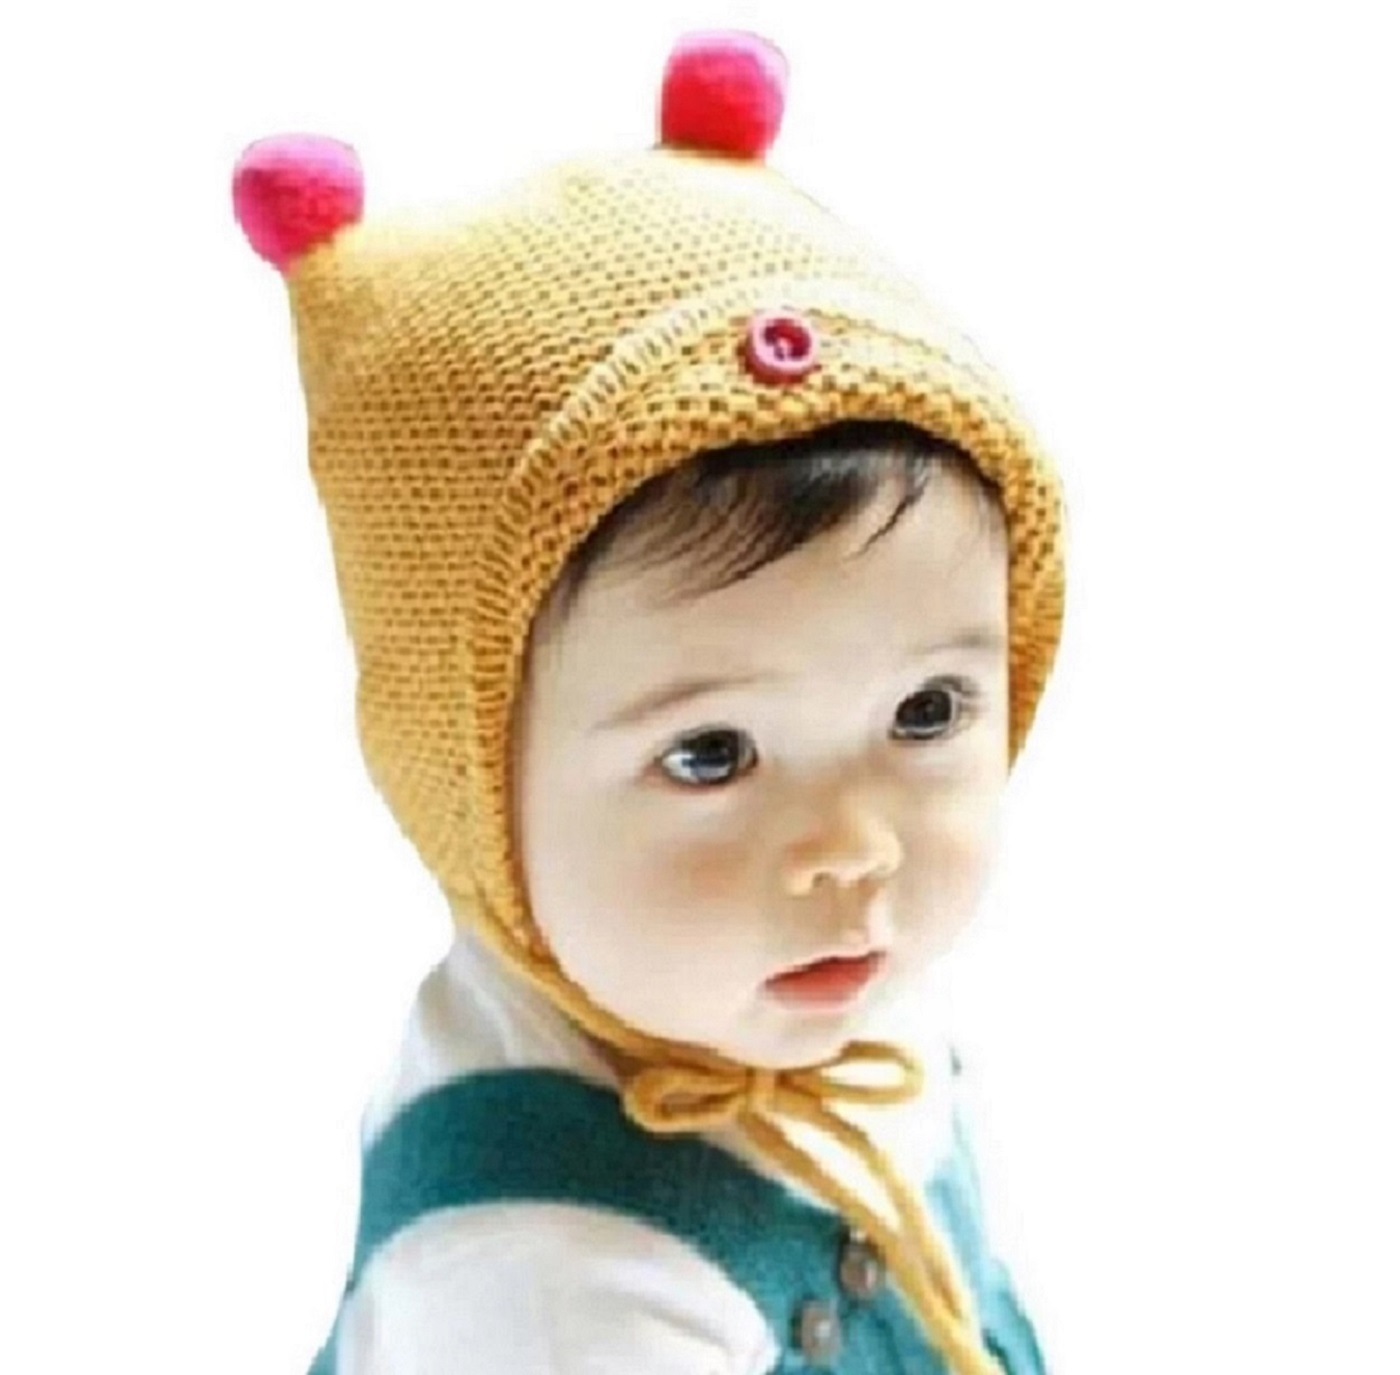 Ziory Winter Wear Knitted Baby Cap   Yellow  12 18 months